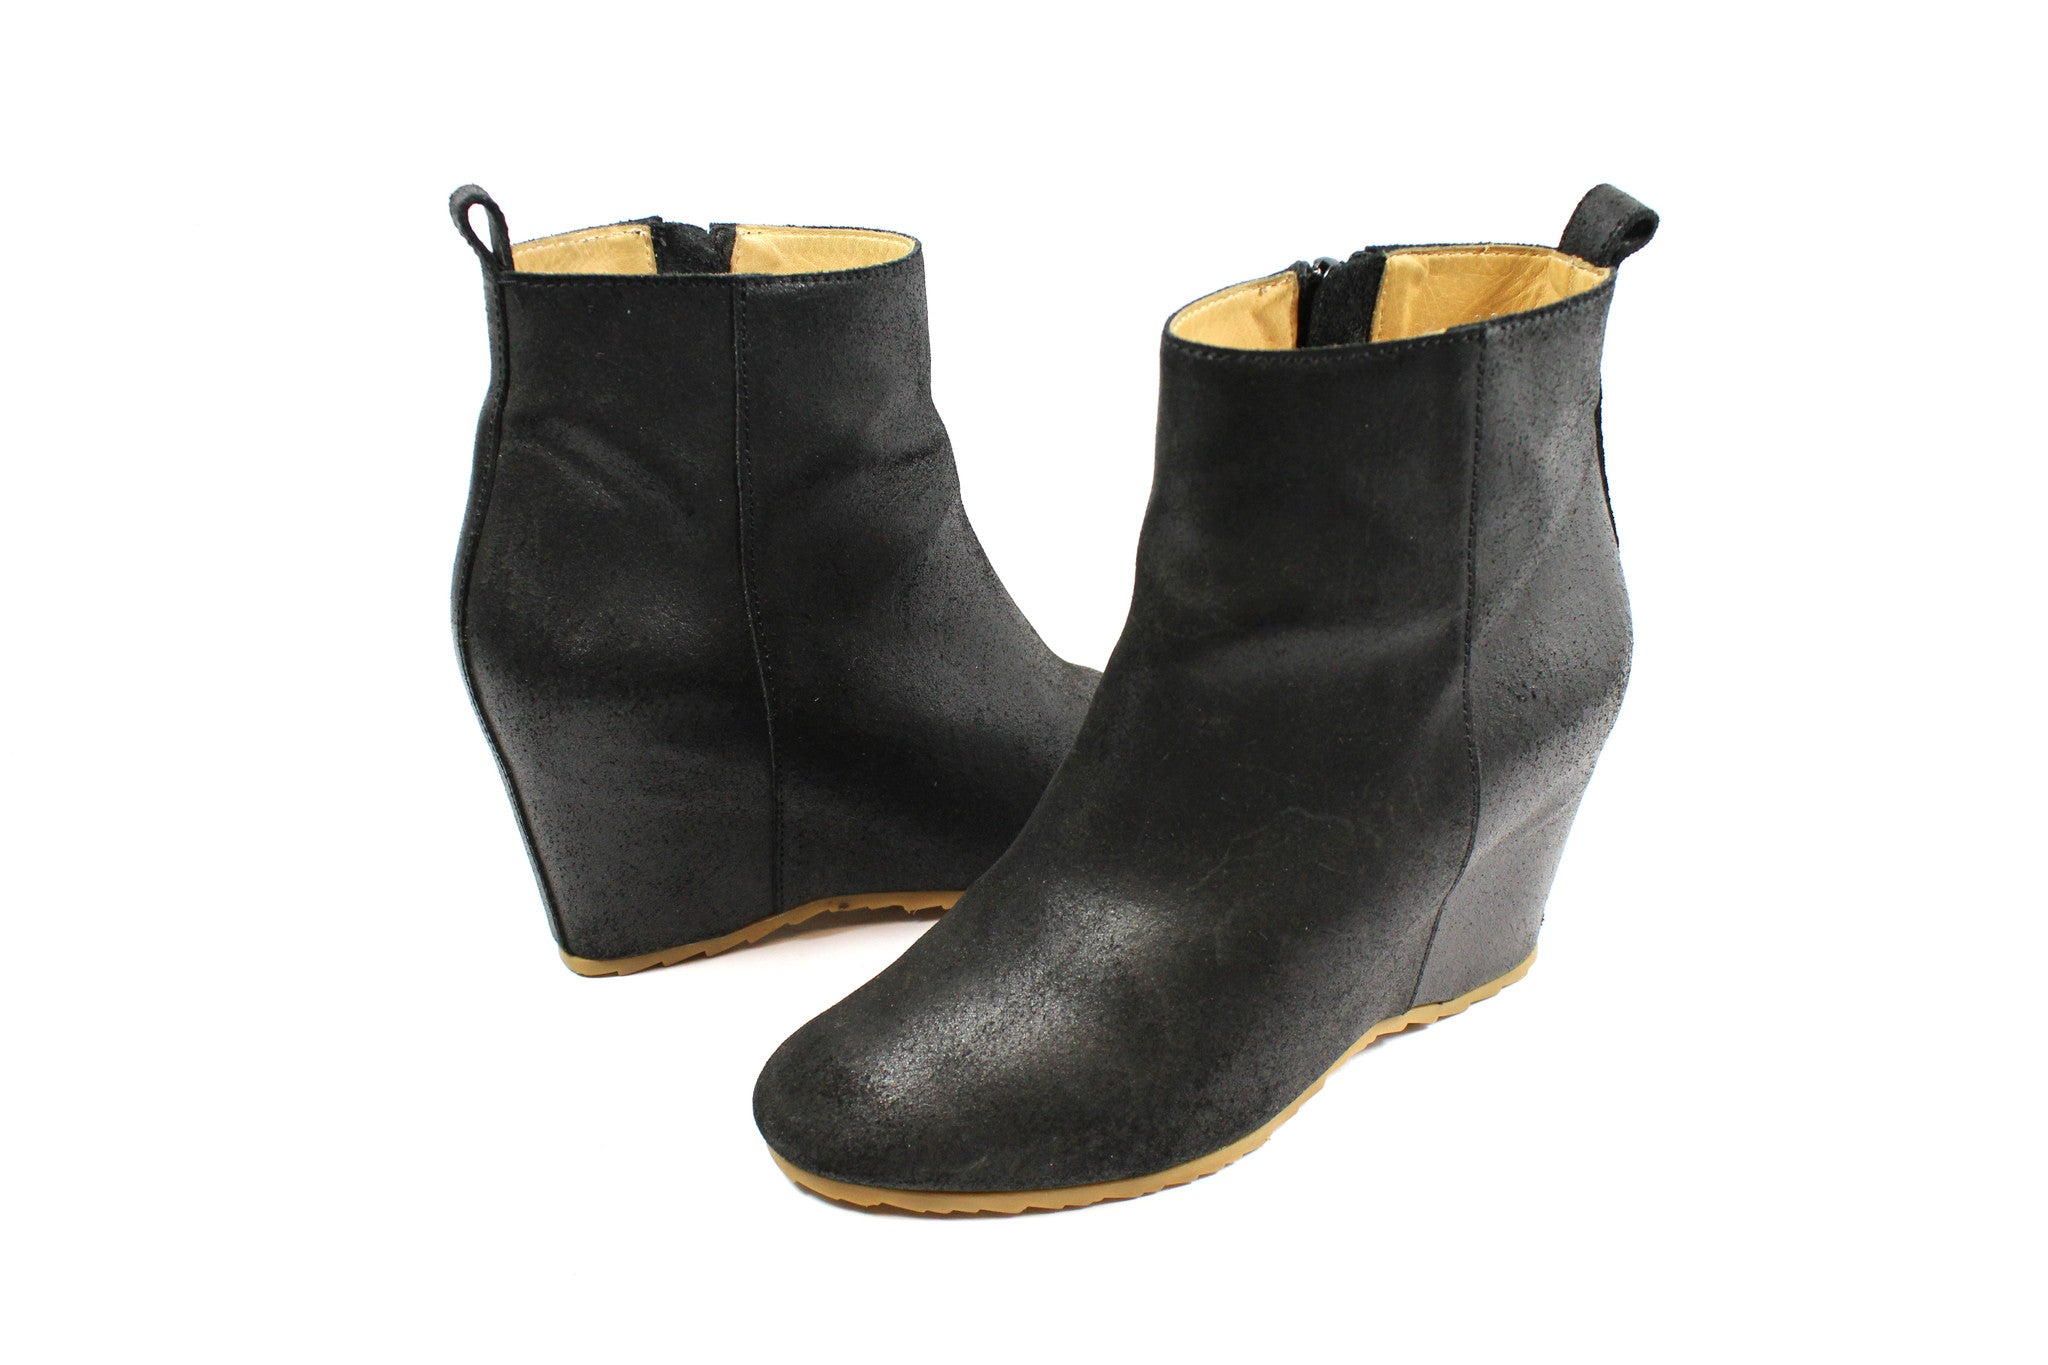 MM6 Maison Margiela Wedge Booties - Encore Consignment - 2